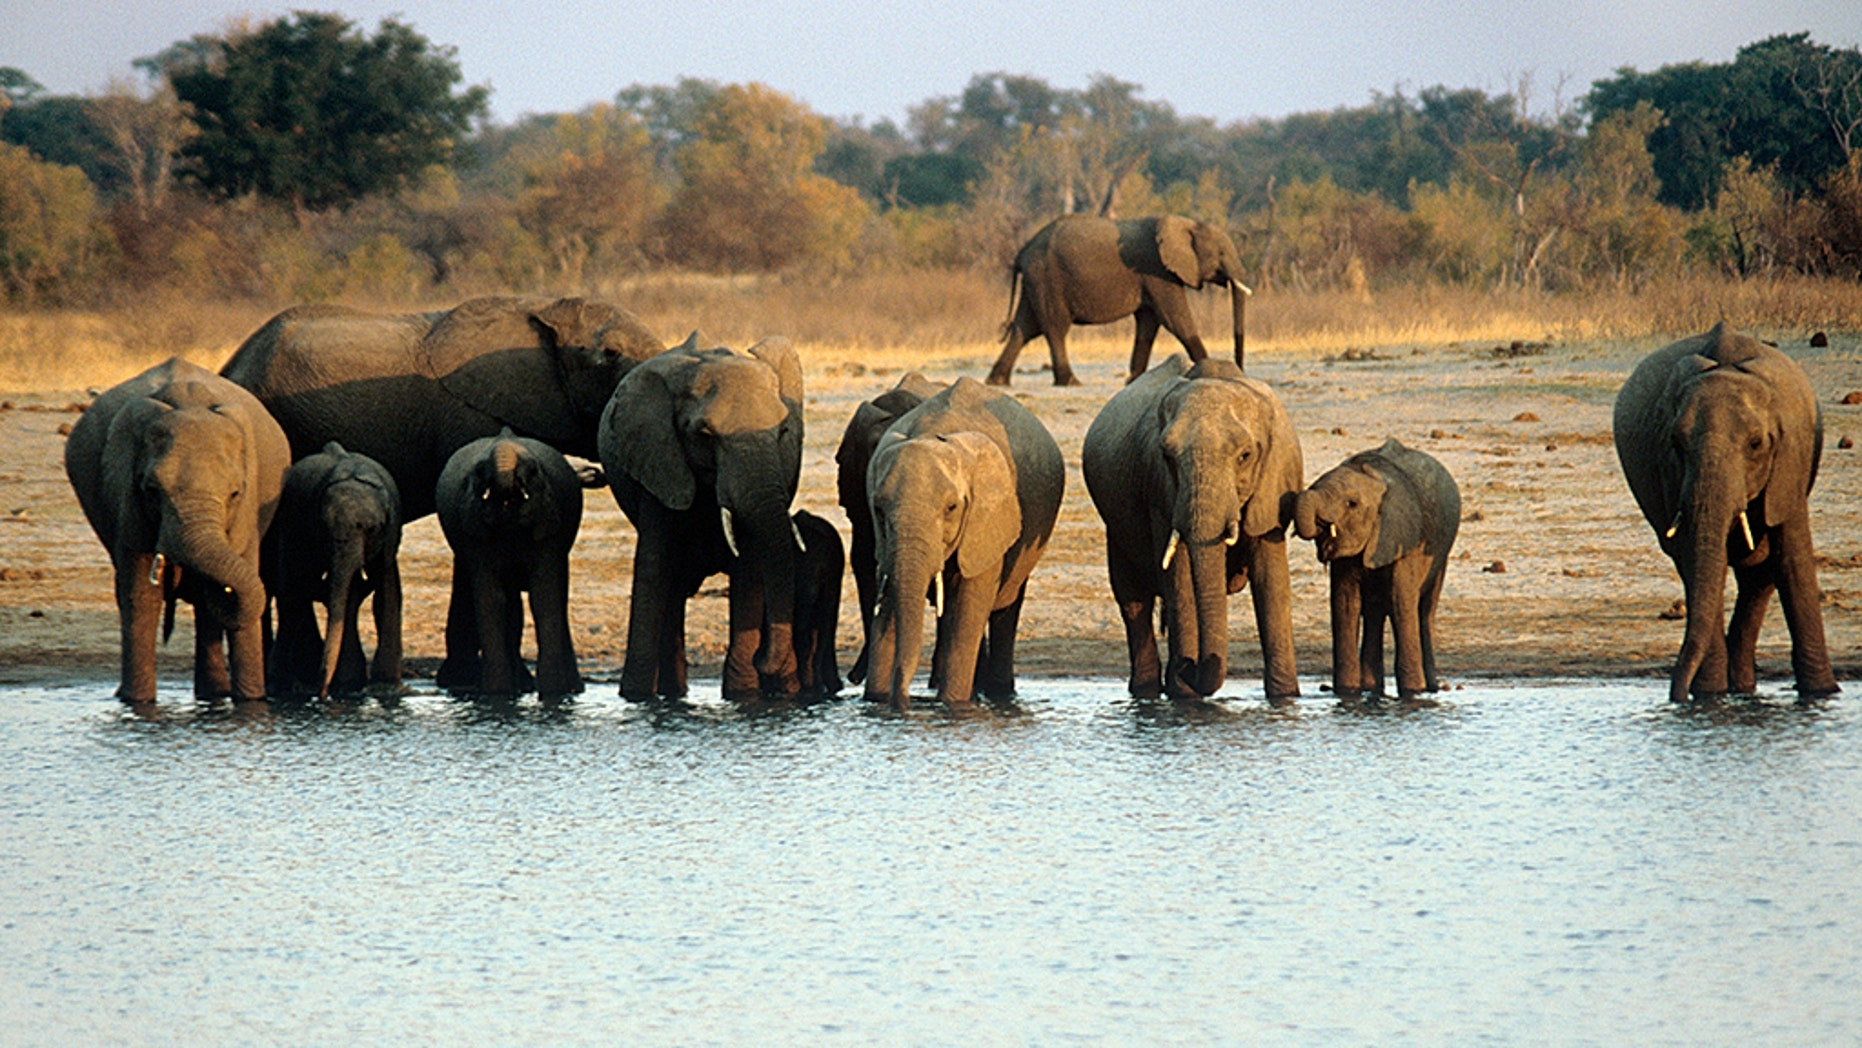 The woman was with a group of tourists at the Mana Pools game reserve (not pictured) when they encountered a herd of elephants upon entering the park